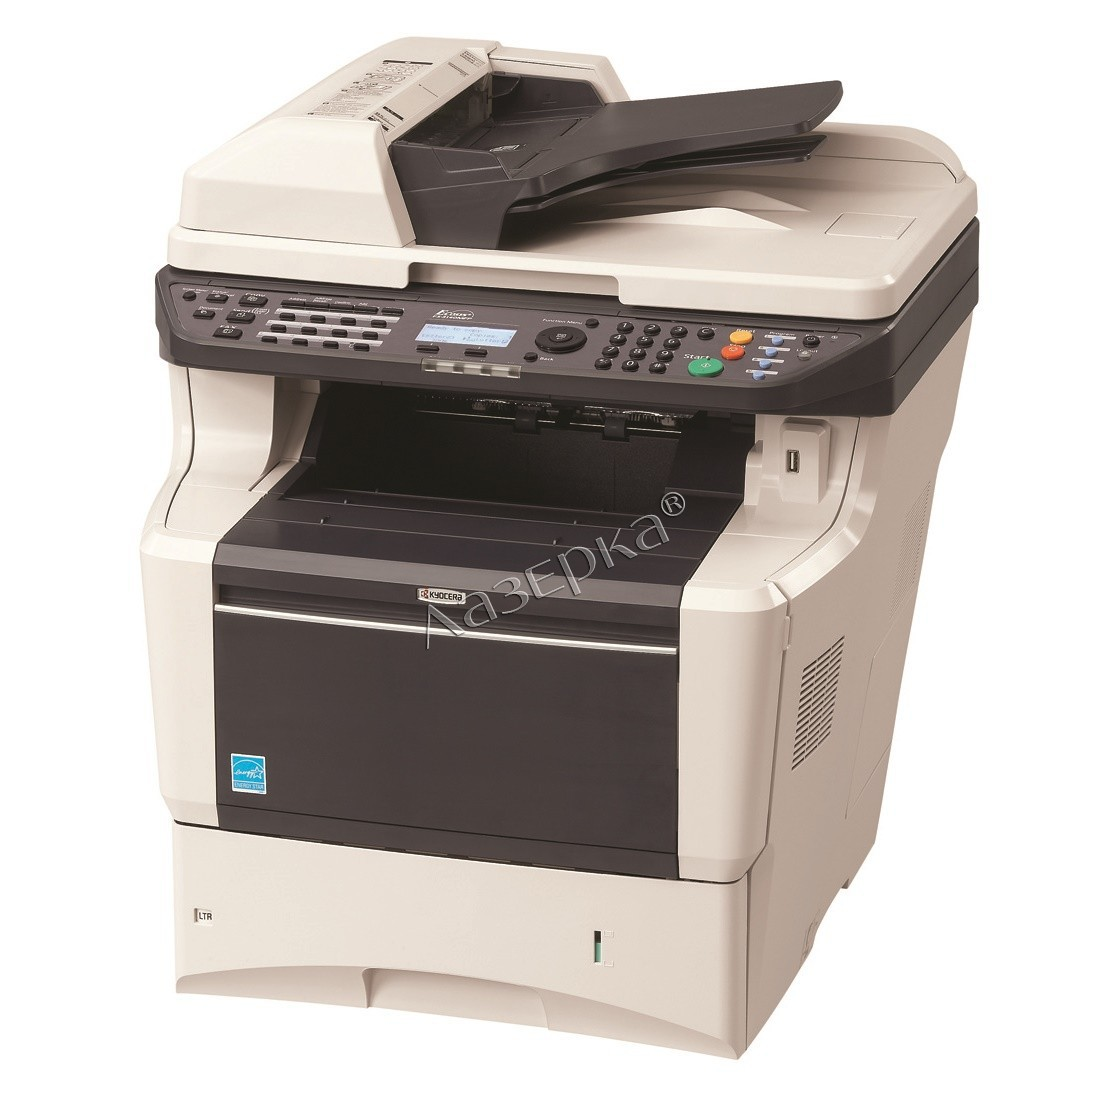 Xerox Phaser 3300MFP PCL 6 Driver